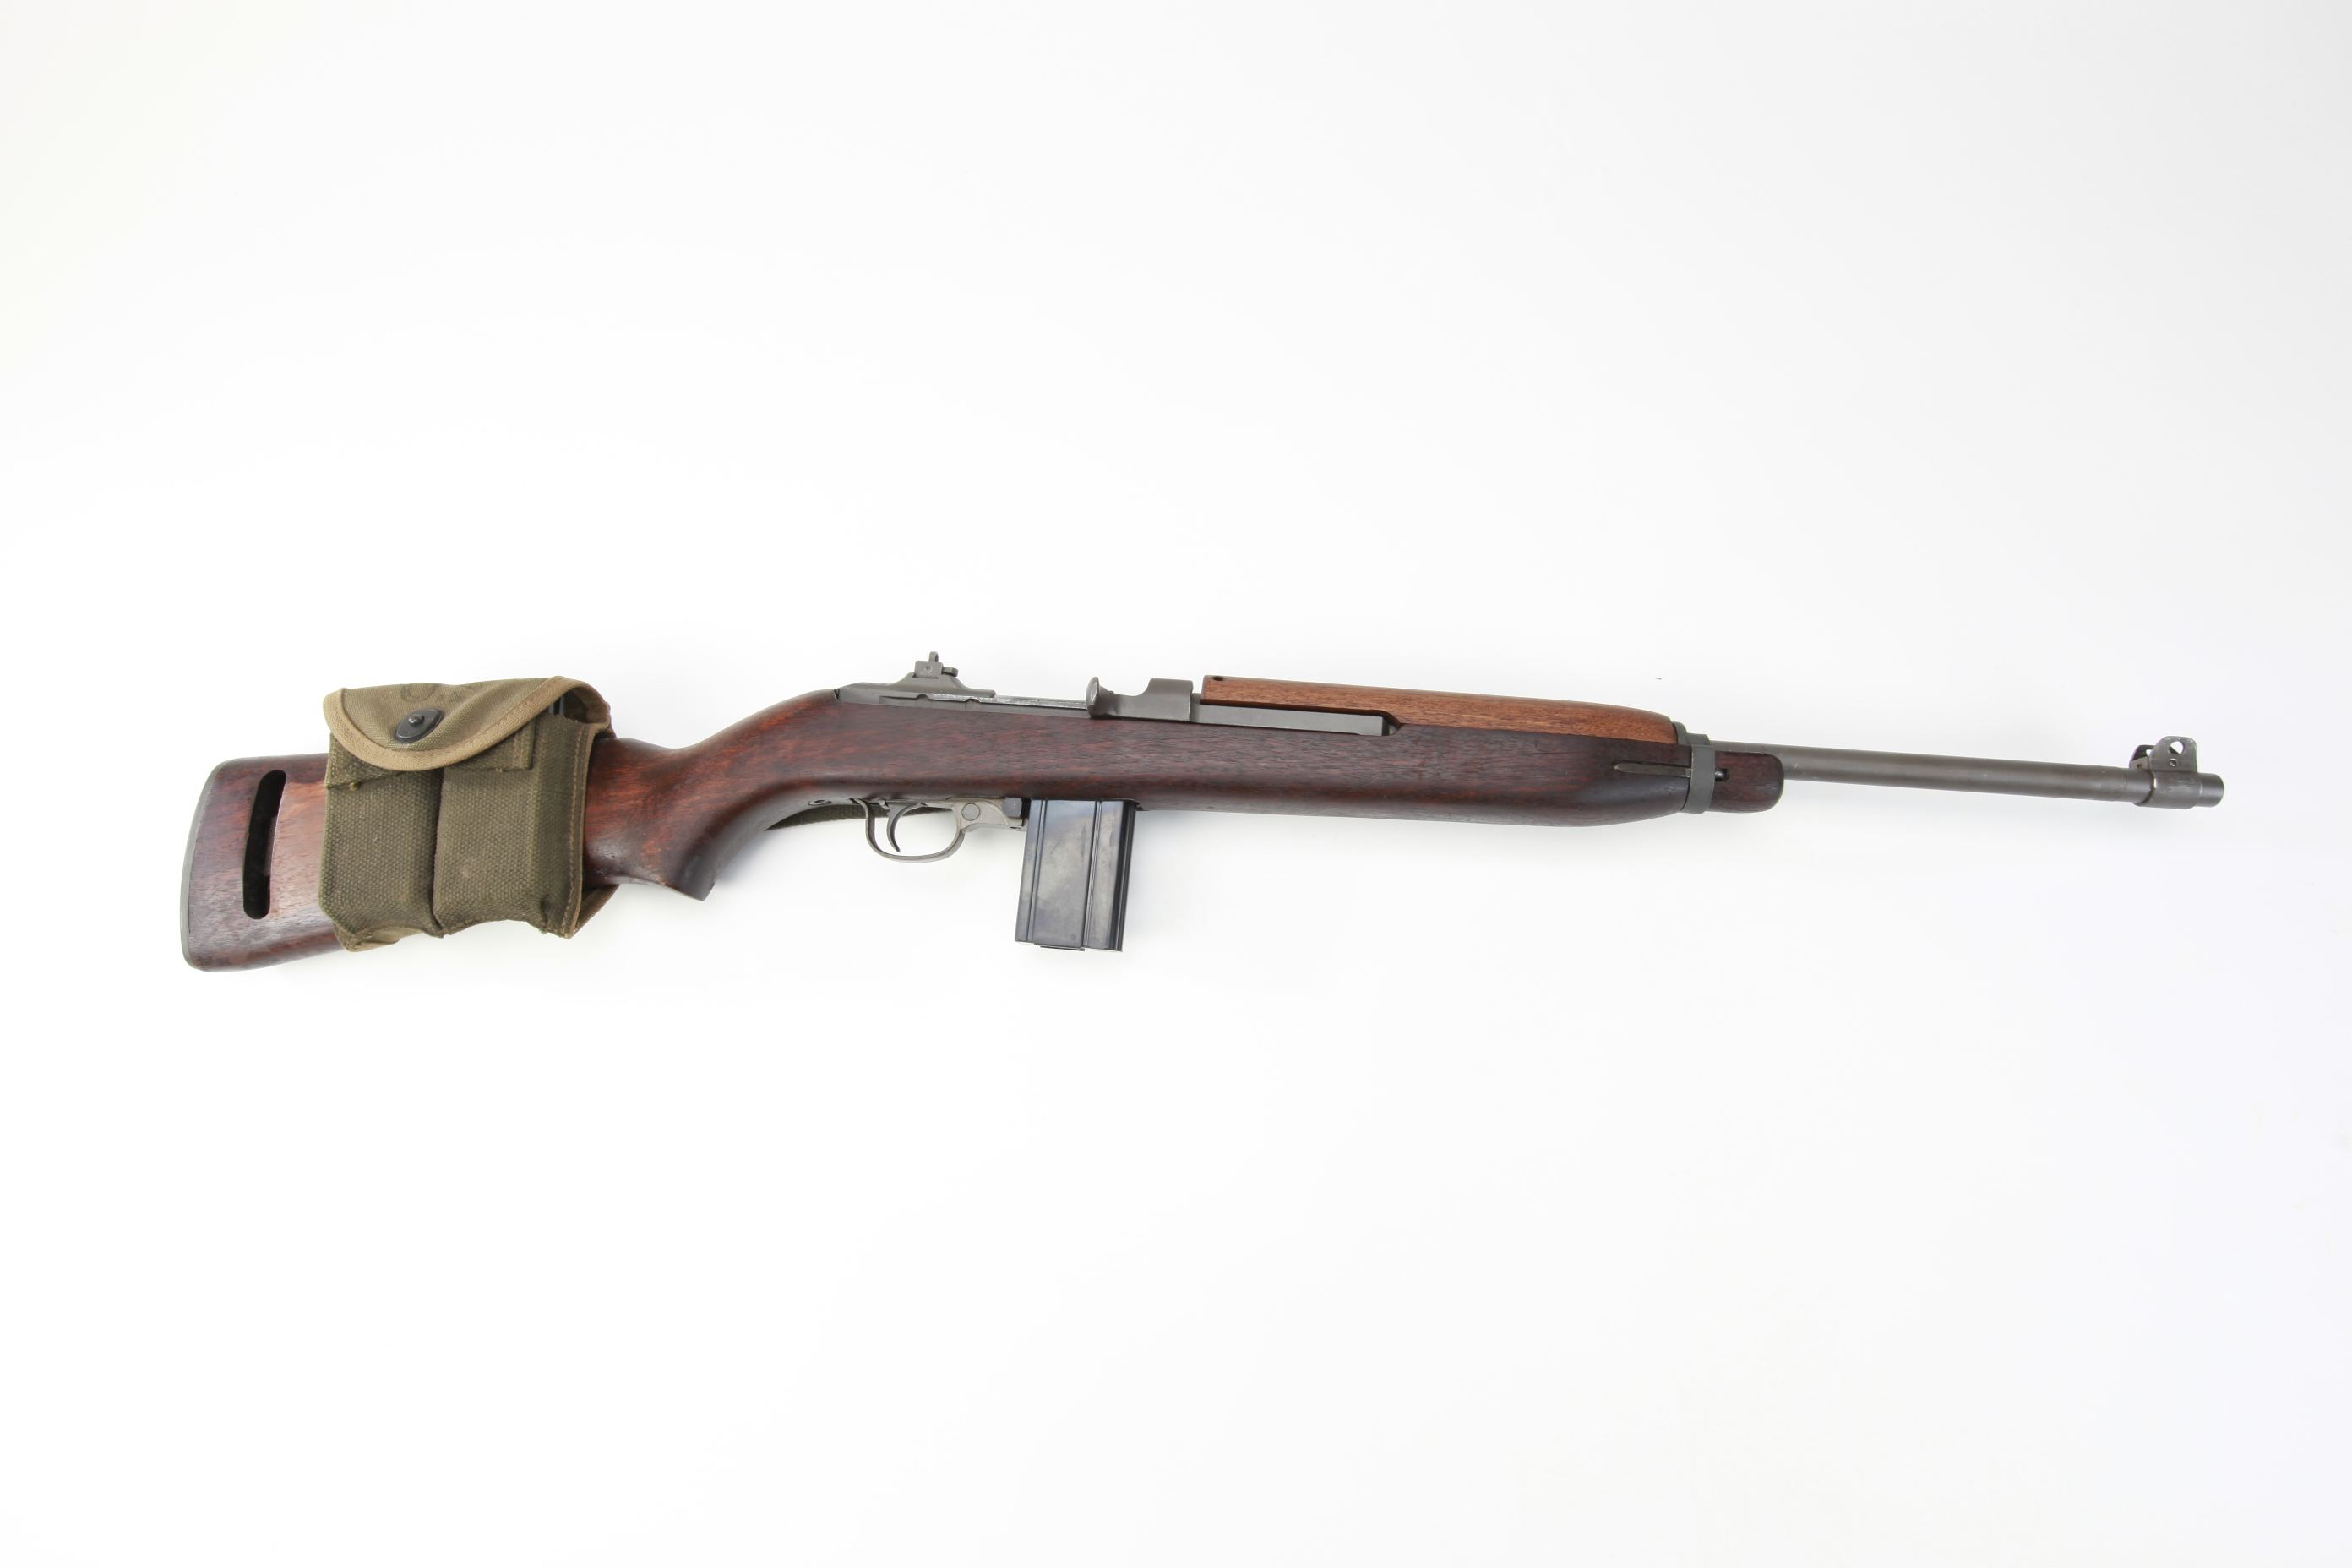 U.S. Underwood Elliot Fisher M1 Carbine